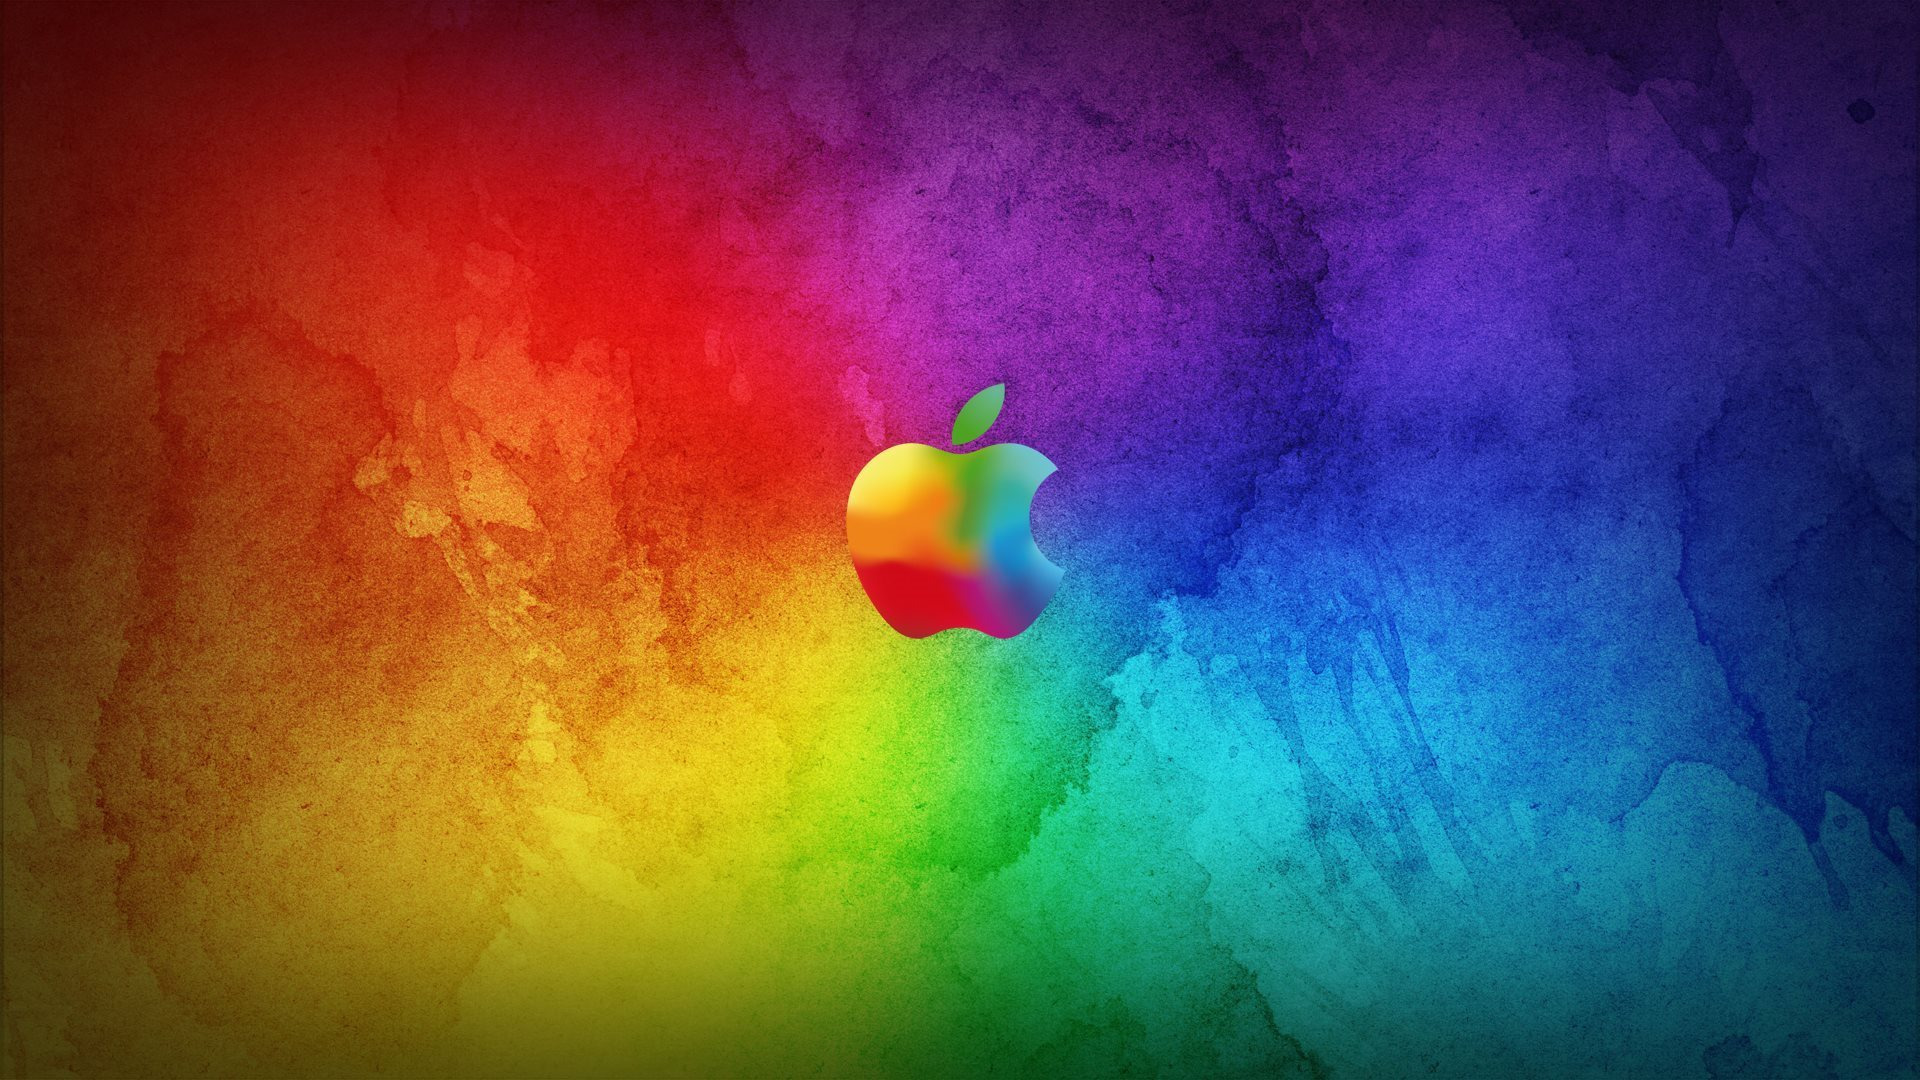 apple logo wallpapers hd a37